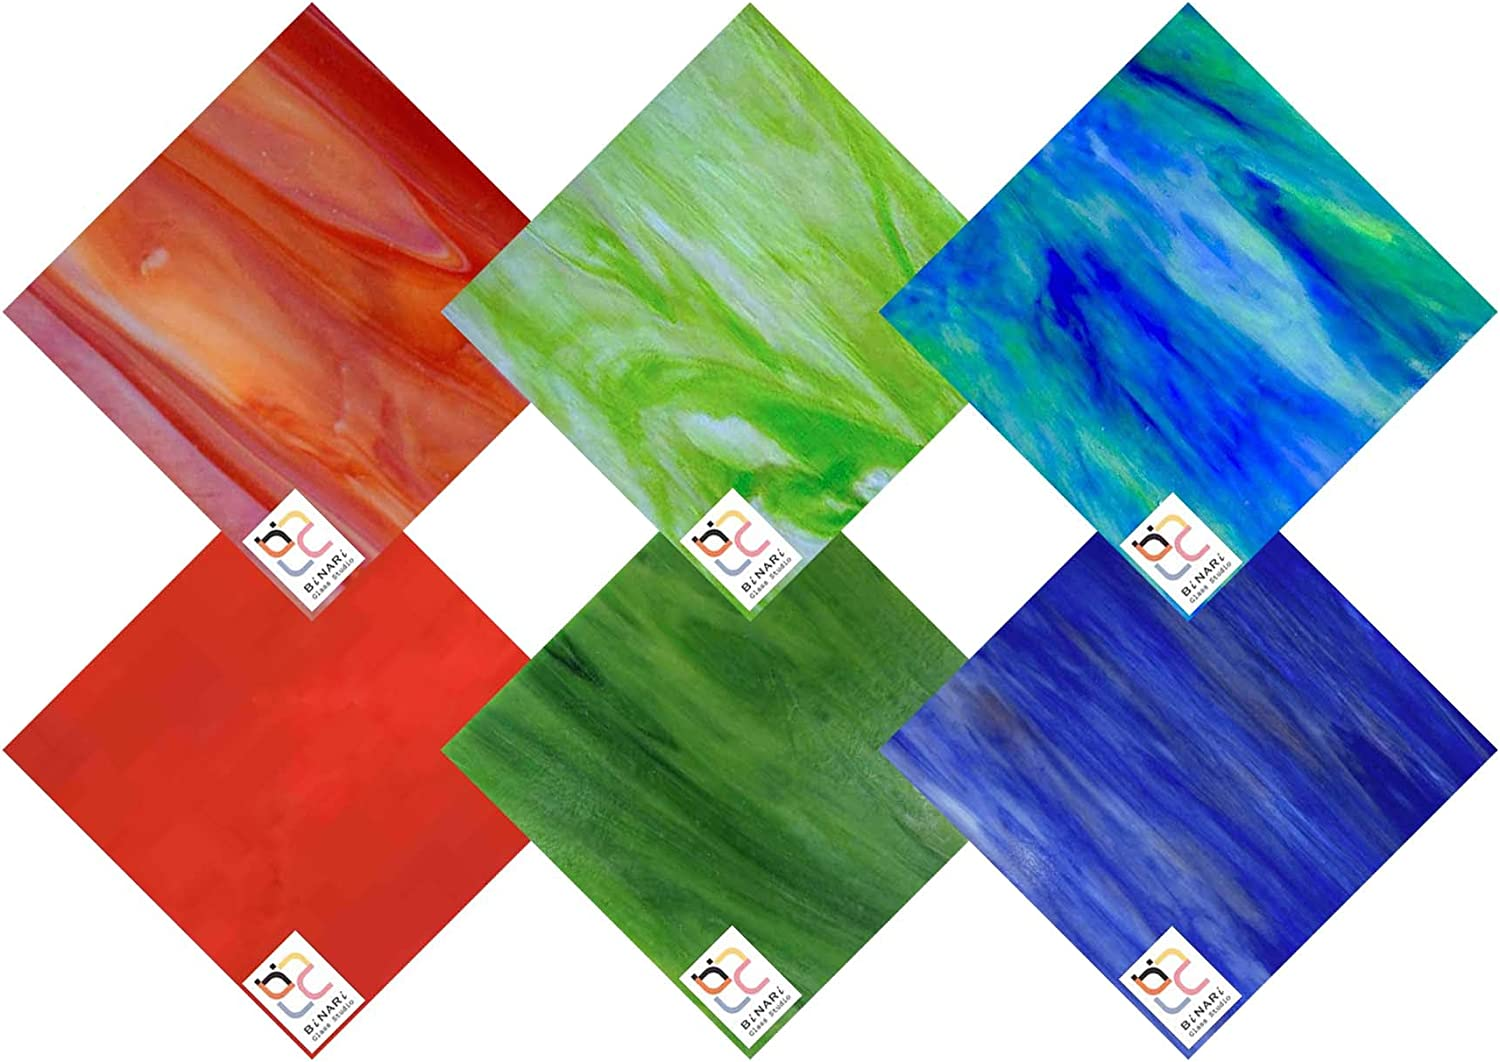 sold out Wissmach 6 Sheet Mixed Color Variety Pack Long-awaited Mosa Stained and Glass